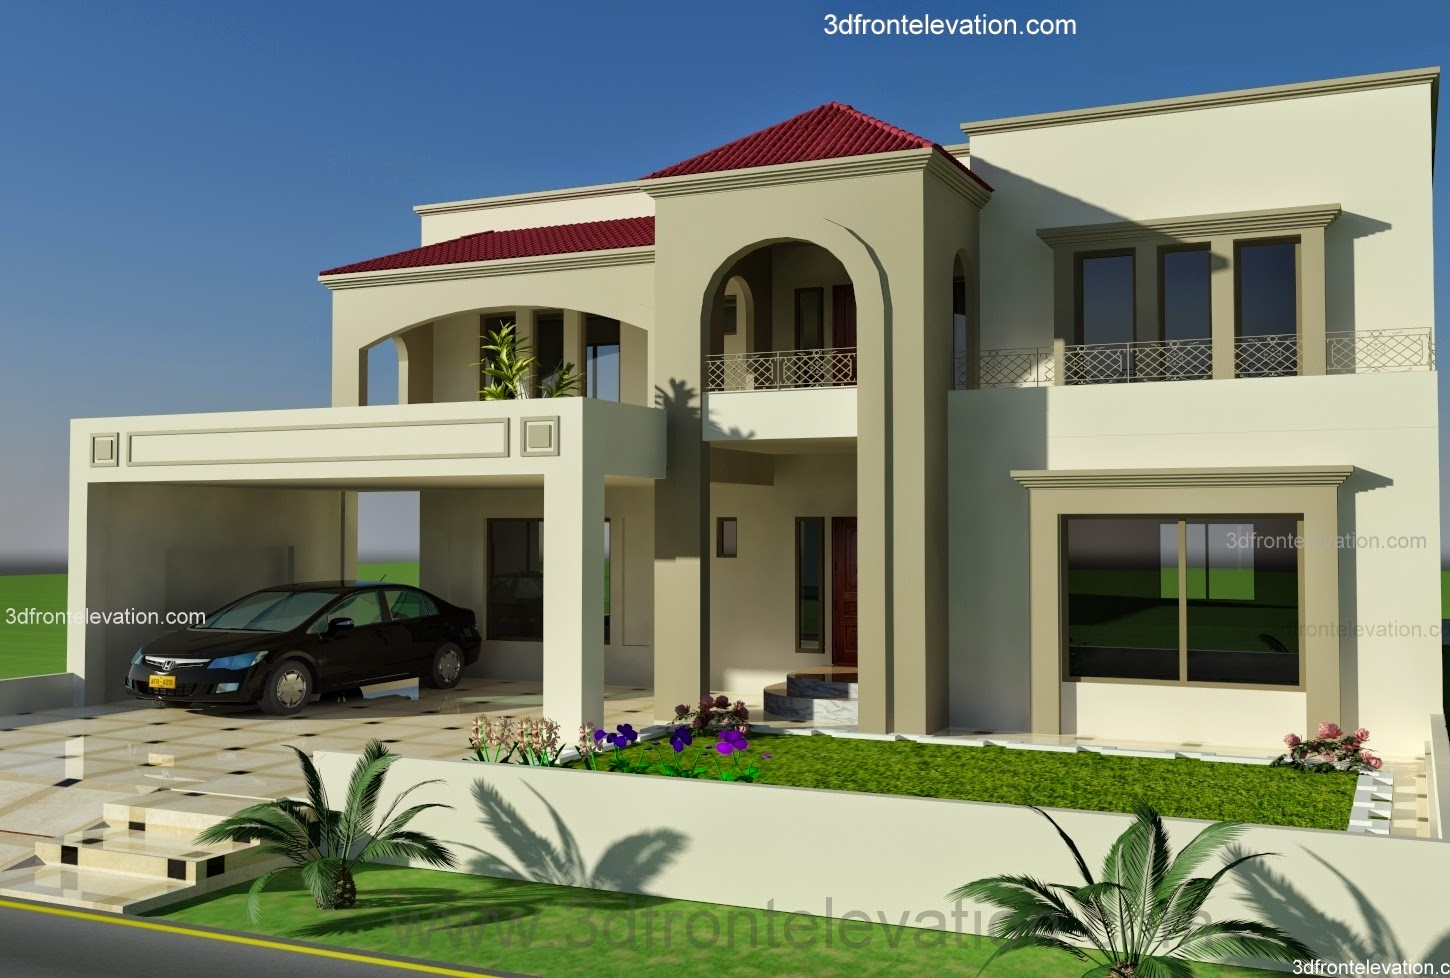 Architectural designs for house in pakistan joy studio for New homes design pakistan